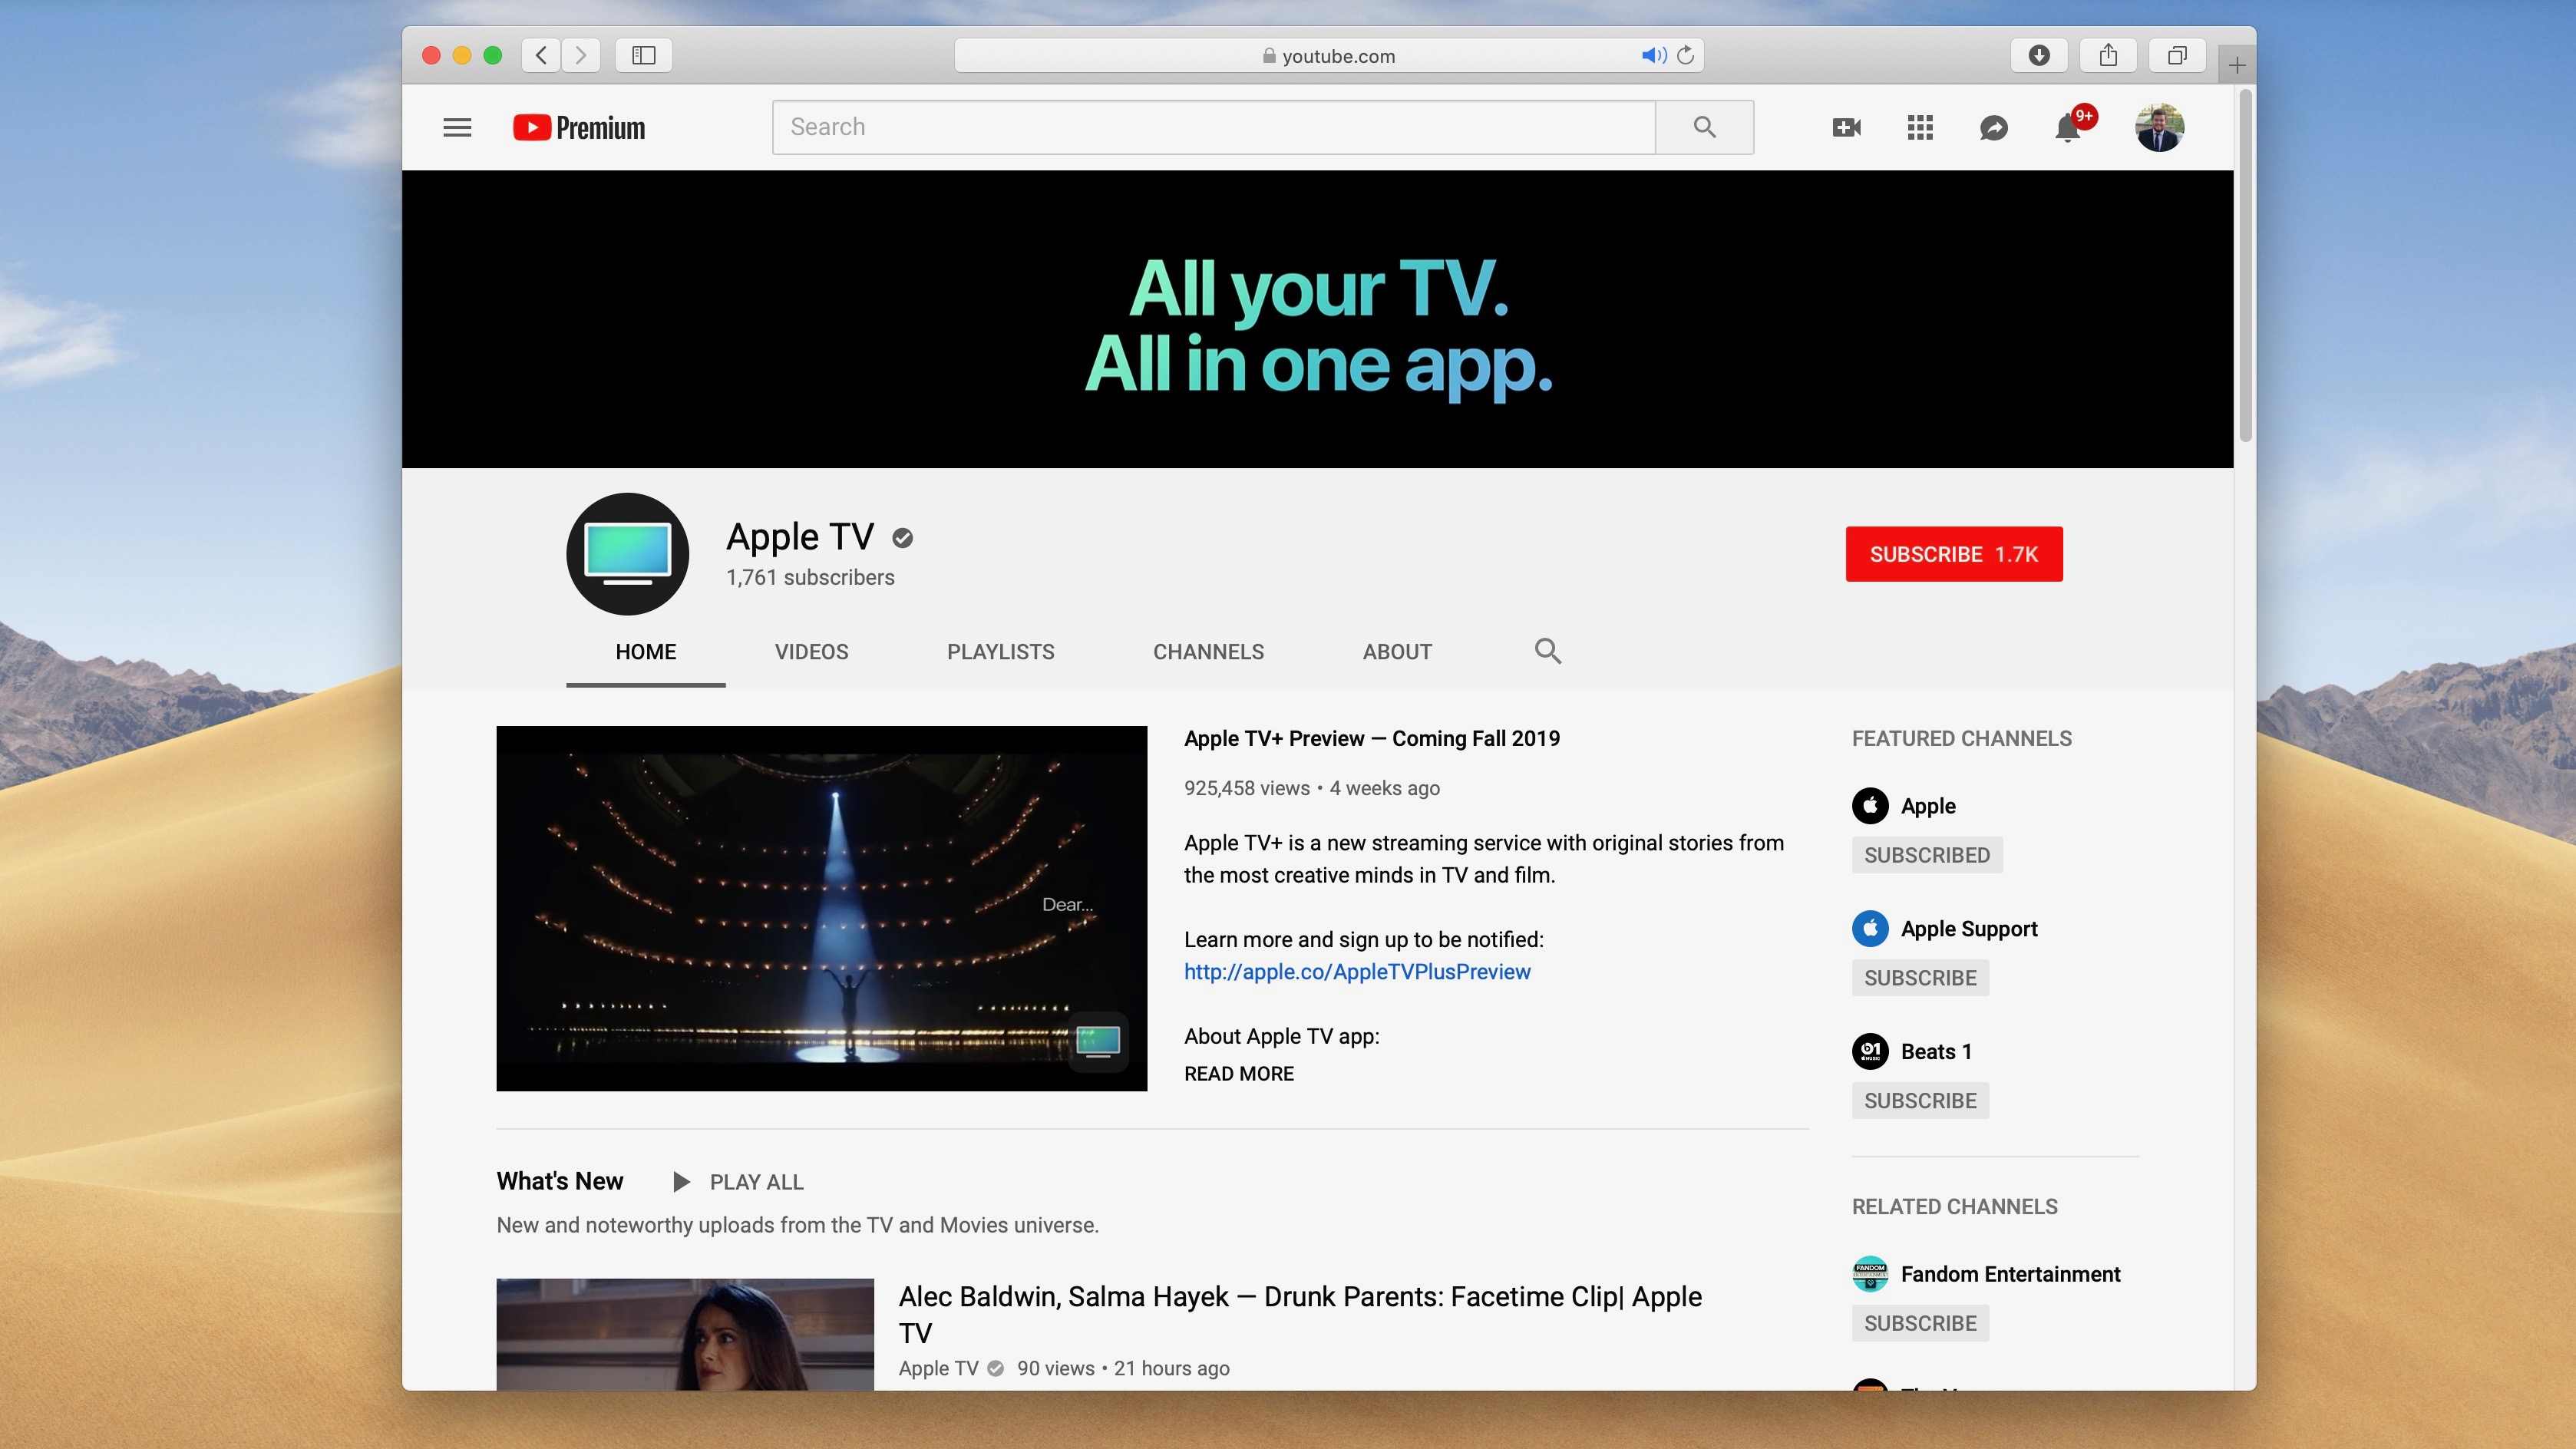 Apple TV YouTube channel debuts, featuring behind-the-scenes videos, trailers, and more